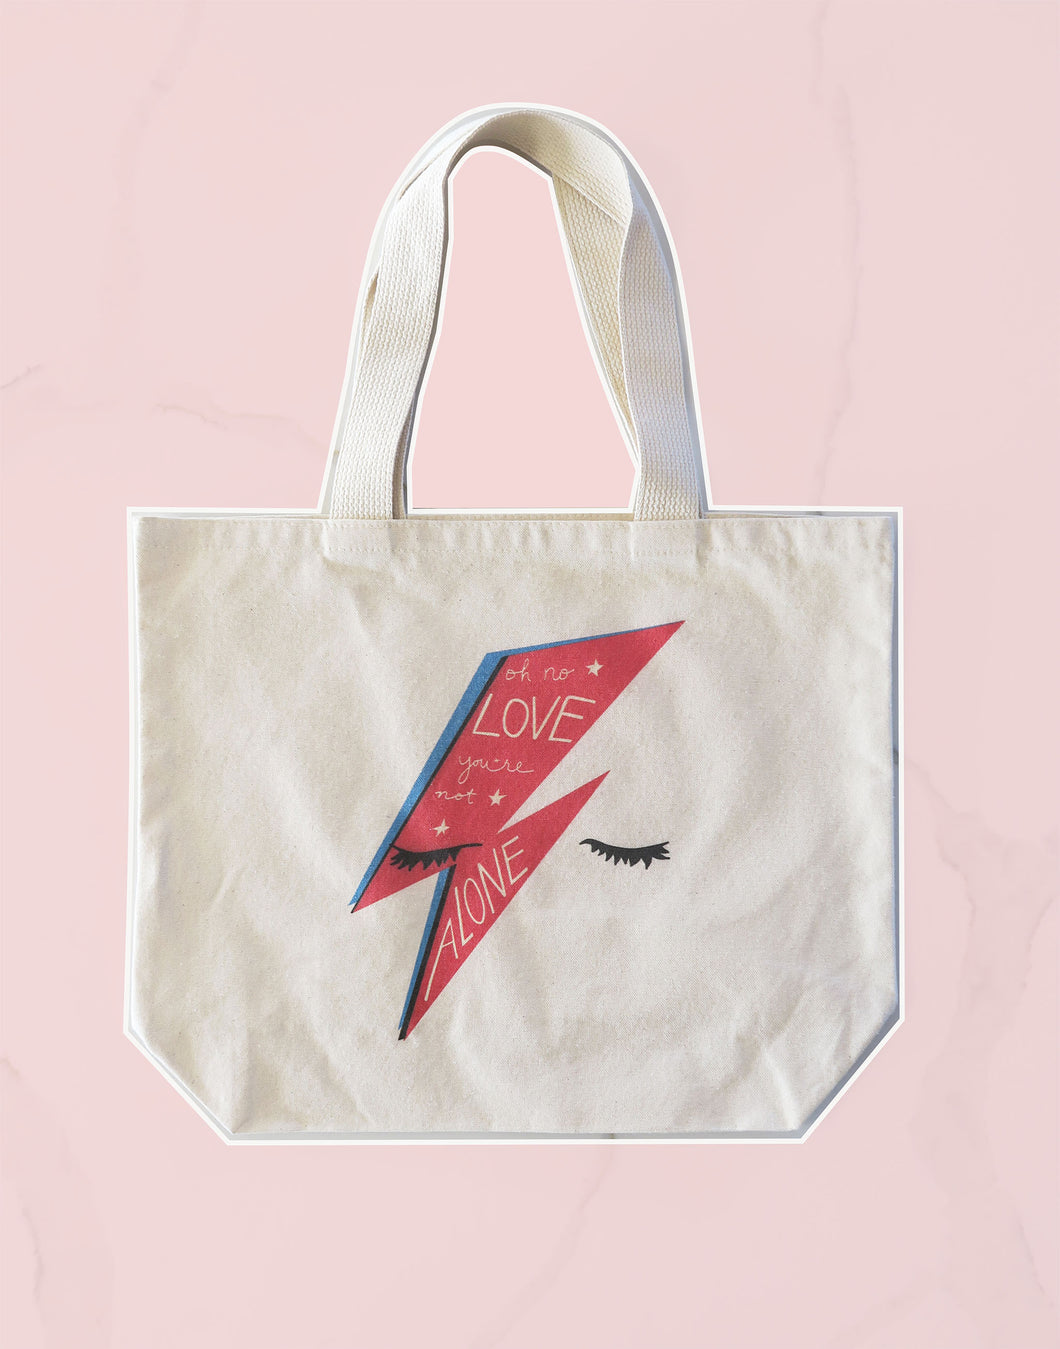 Bowie Oh No Love, You're Not Alone Tote Bag